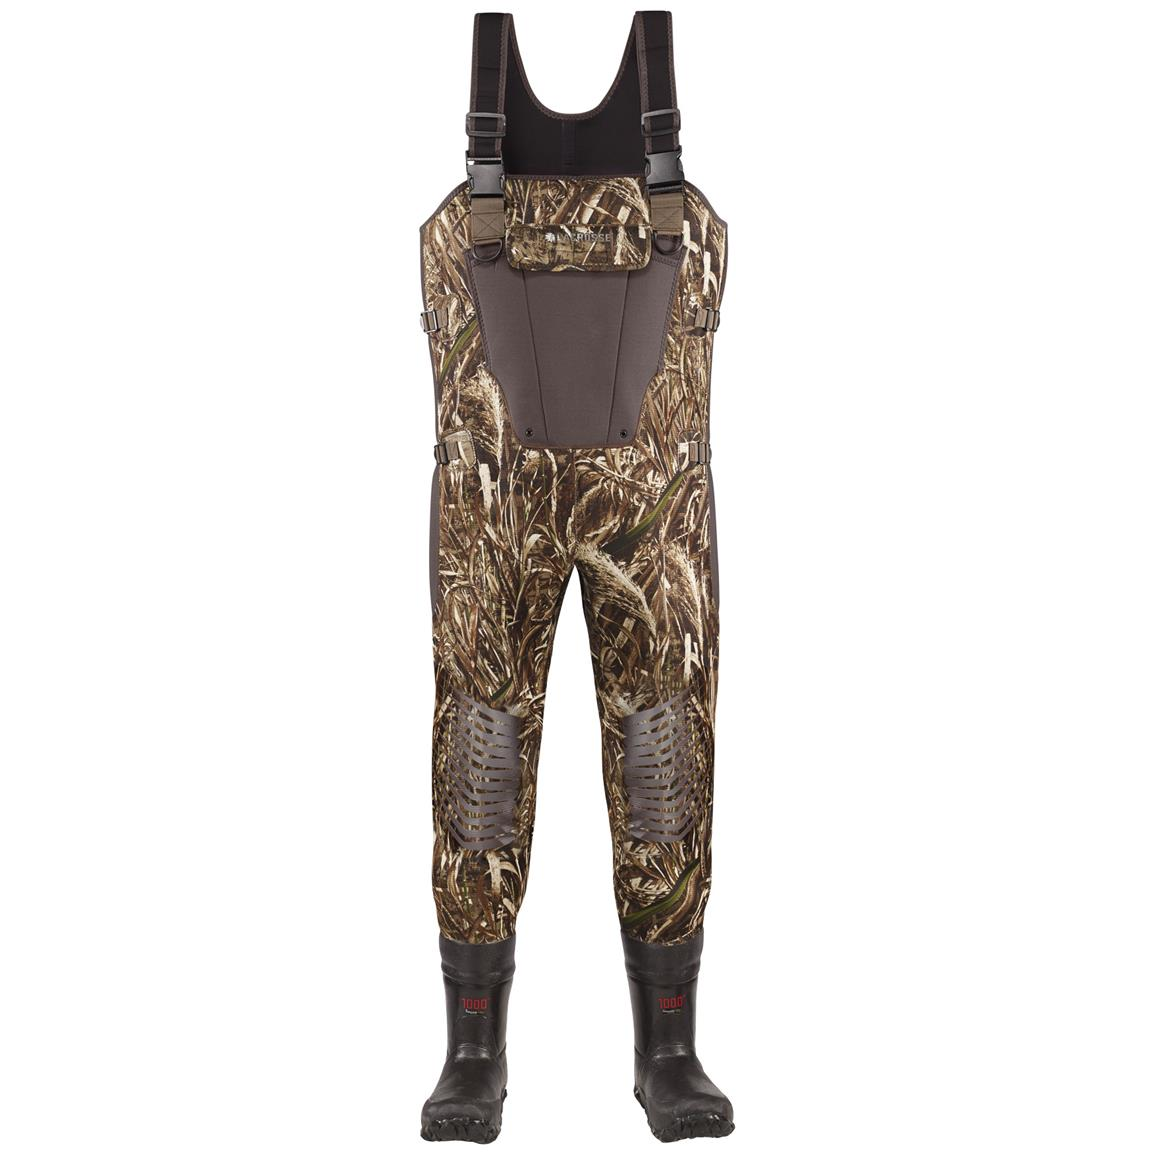 Men's Lacrosse 1,000 Gram Thinsulate Ultra Mallard II Expandable Waders, Realtree MAX-5® Camo - Front view